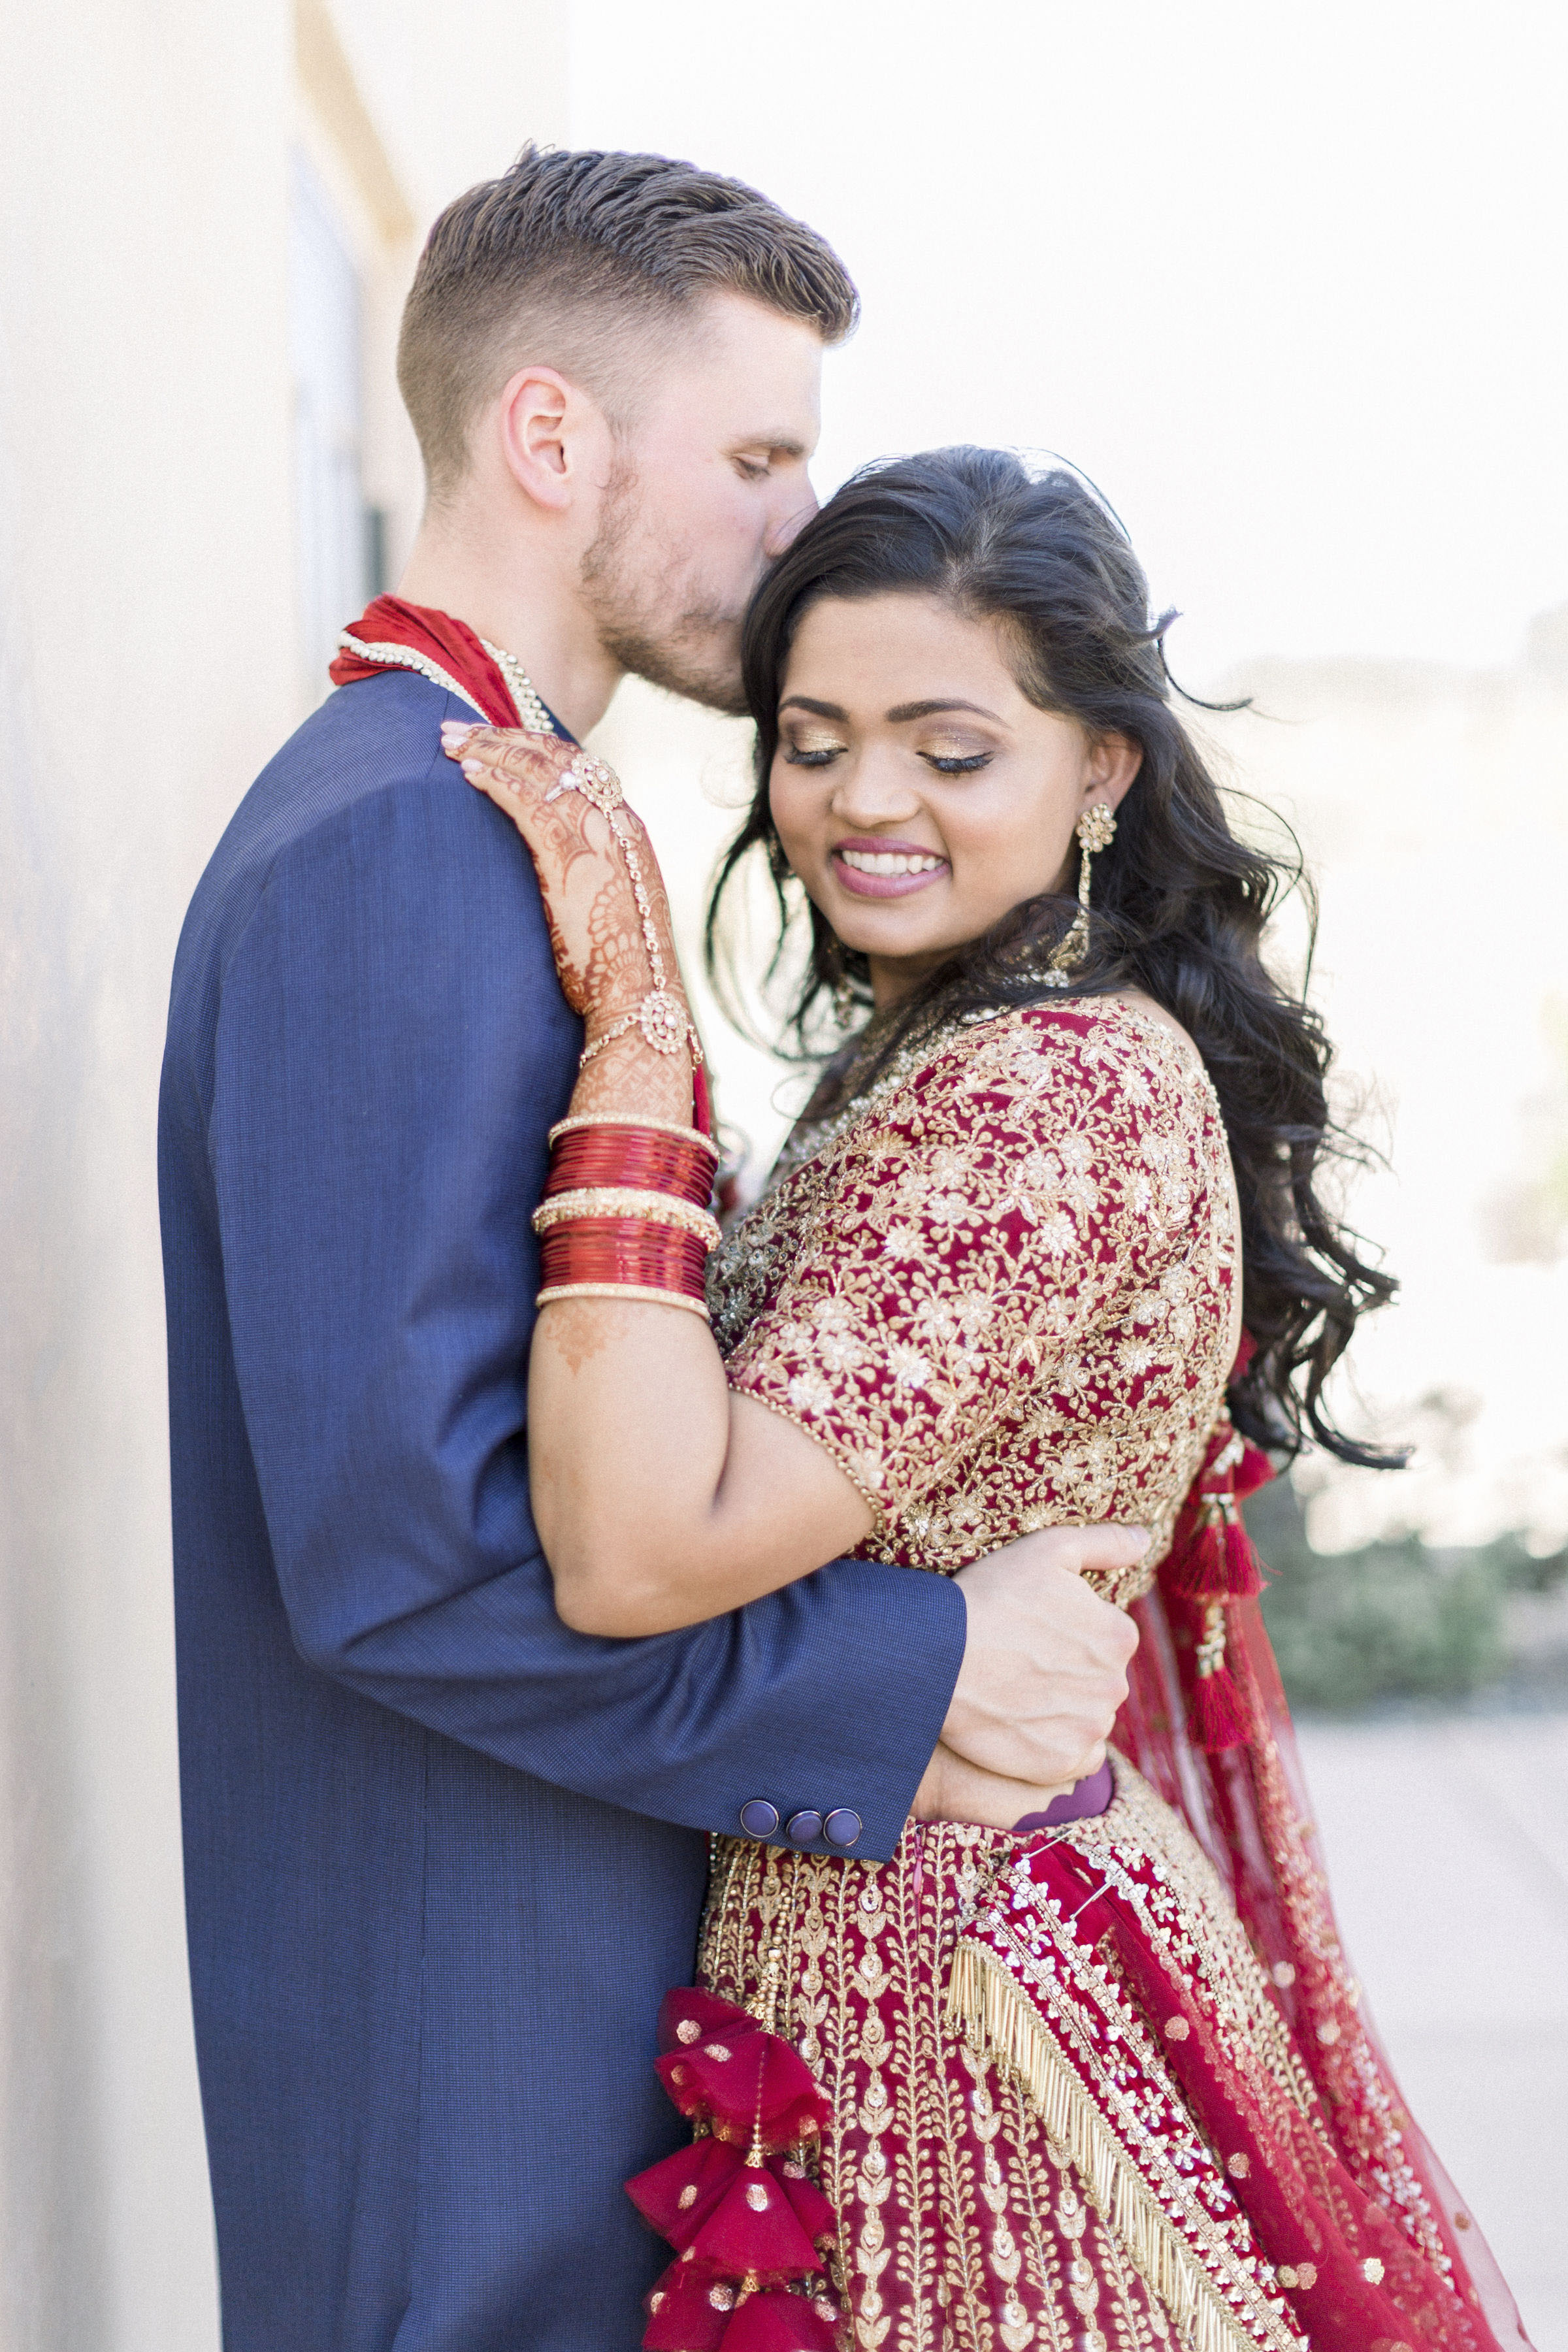 Domenica Beauty _ Hair and Makeup Artist _Wedding _ Temecula, CA _ Pratishtha and Christopher _ 16.JPG